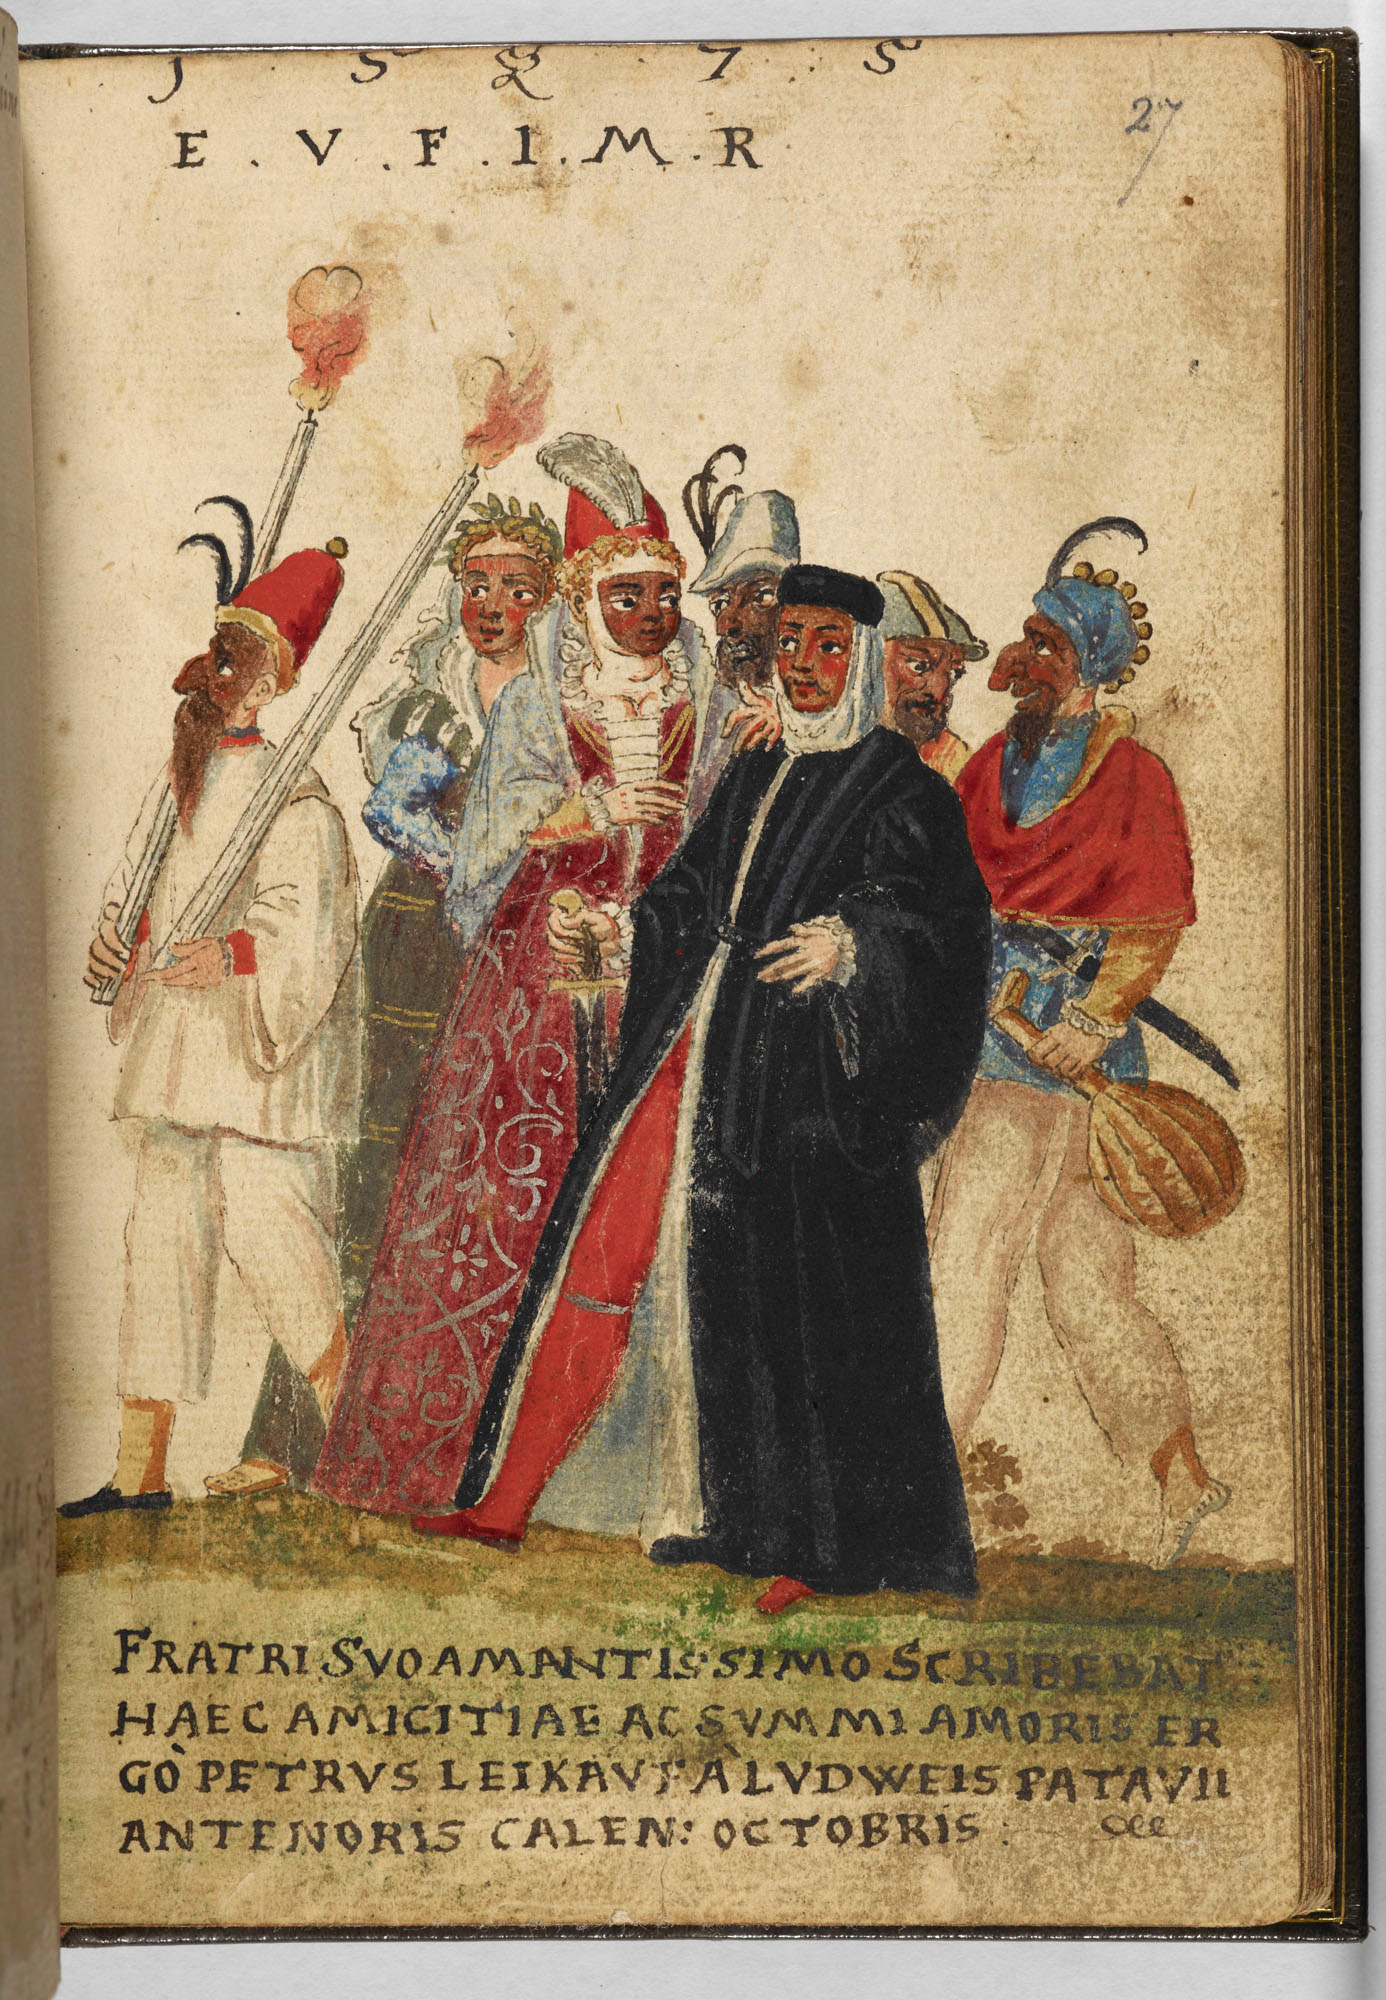 Commedia dell'arte figures in the Friendship Album of Alexander Faber